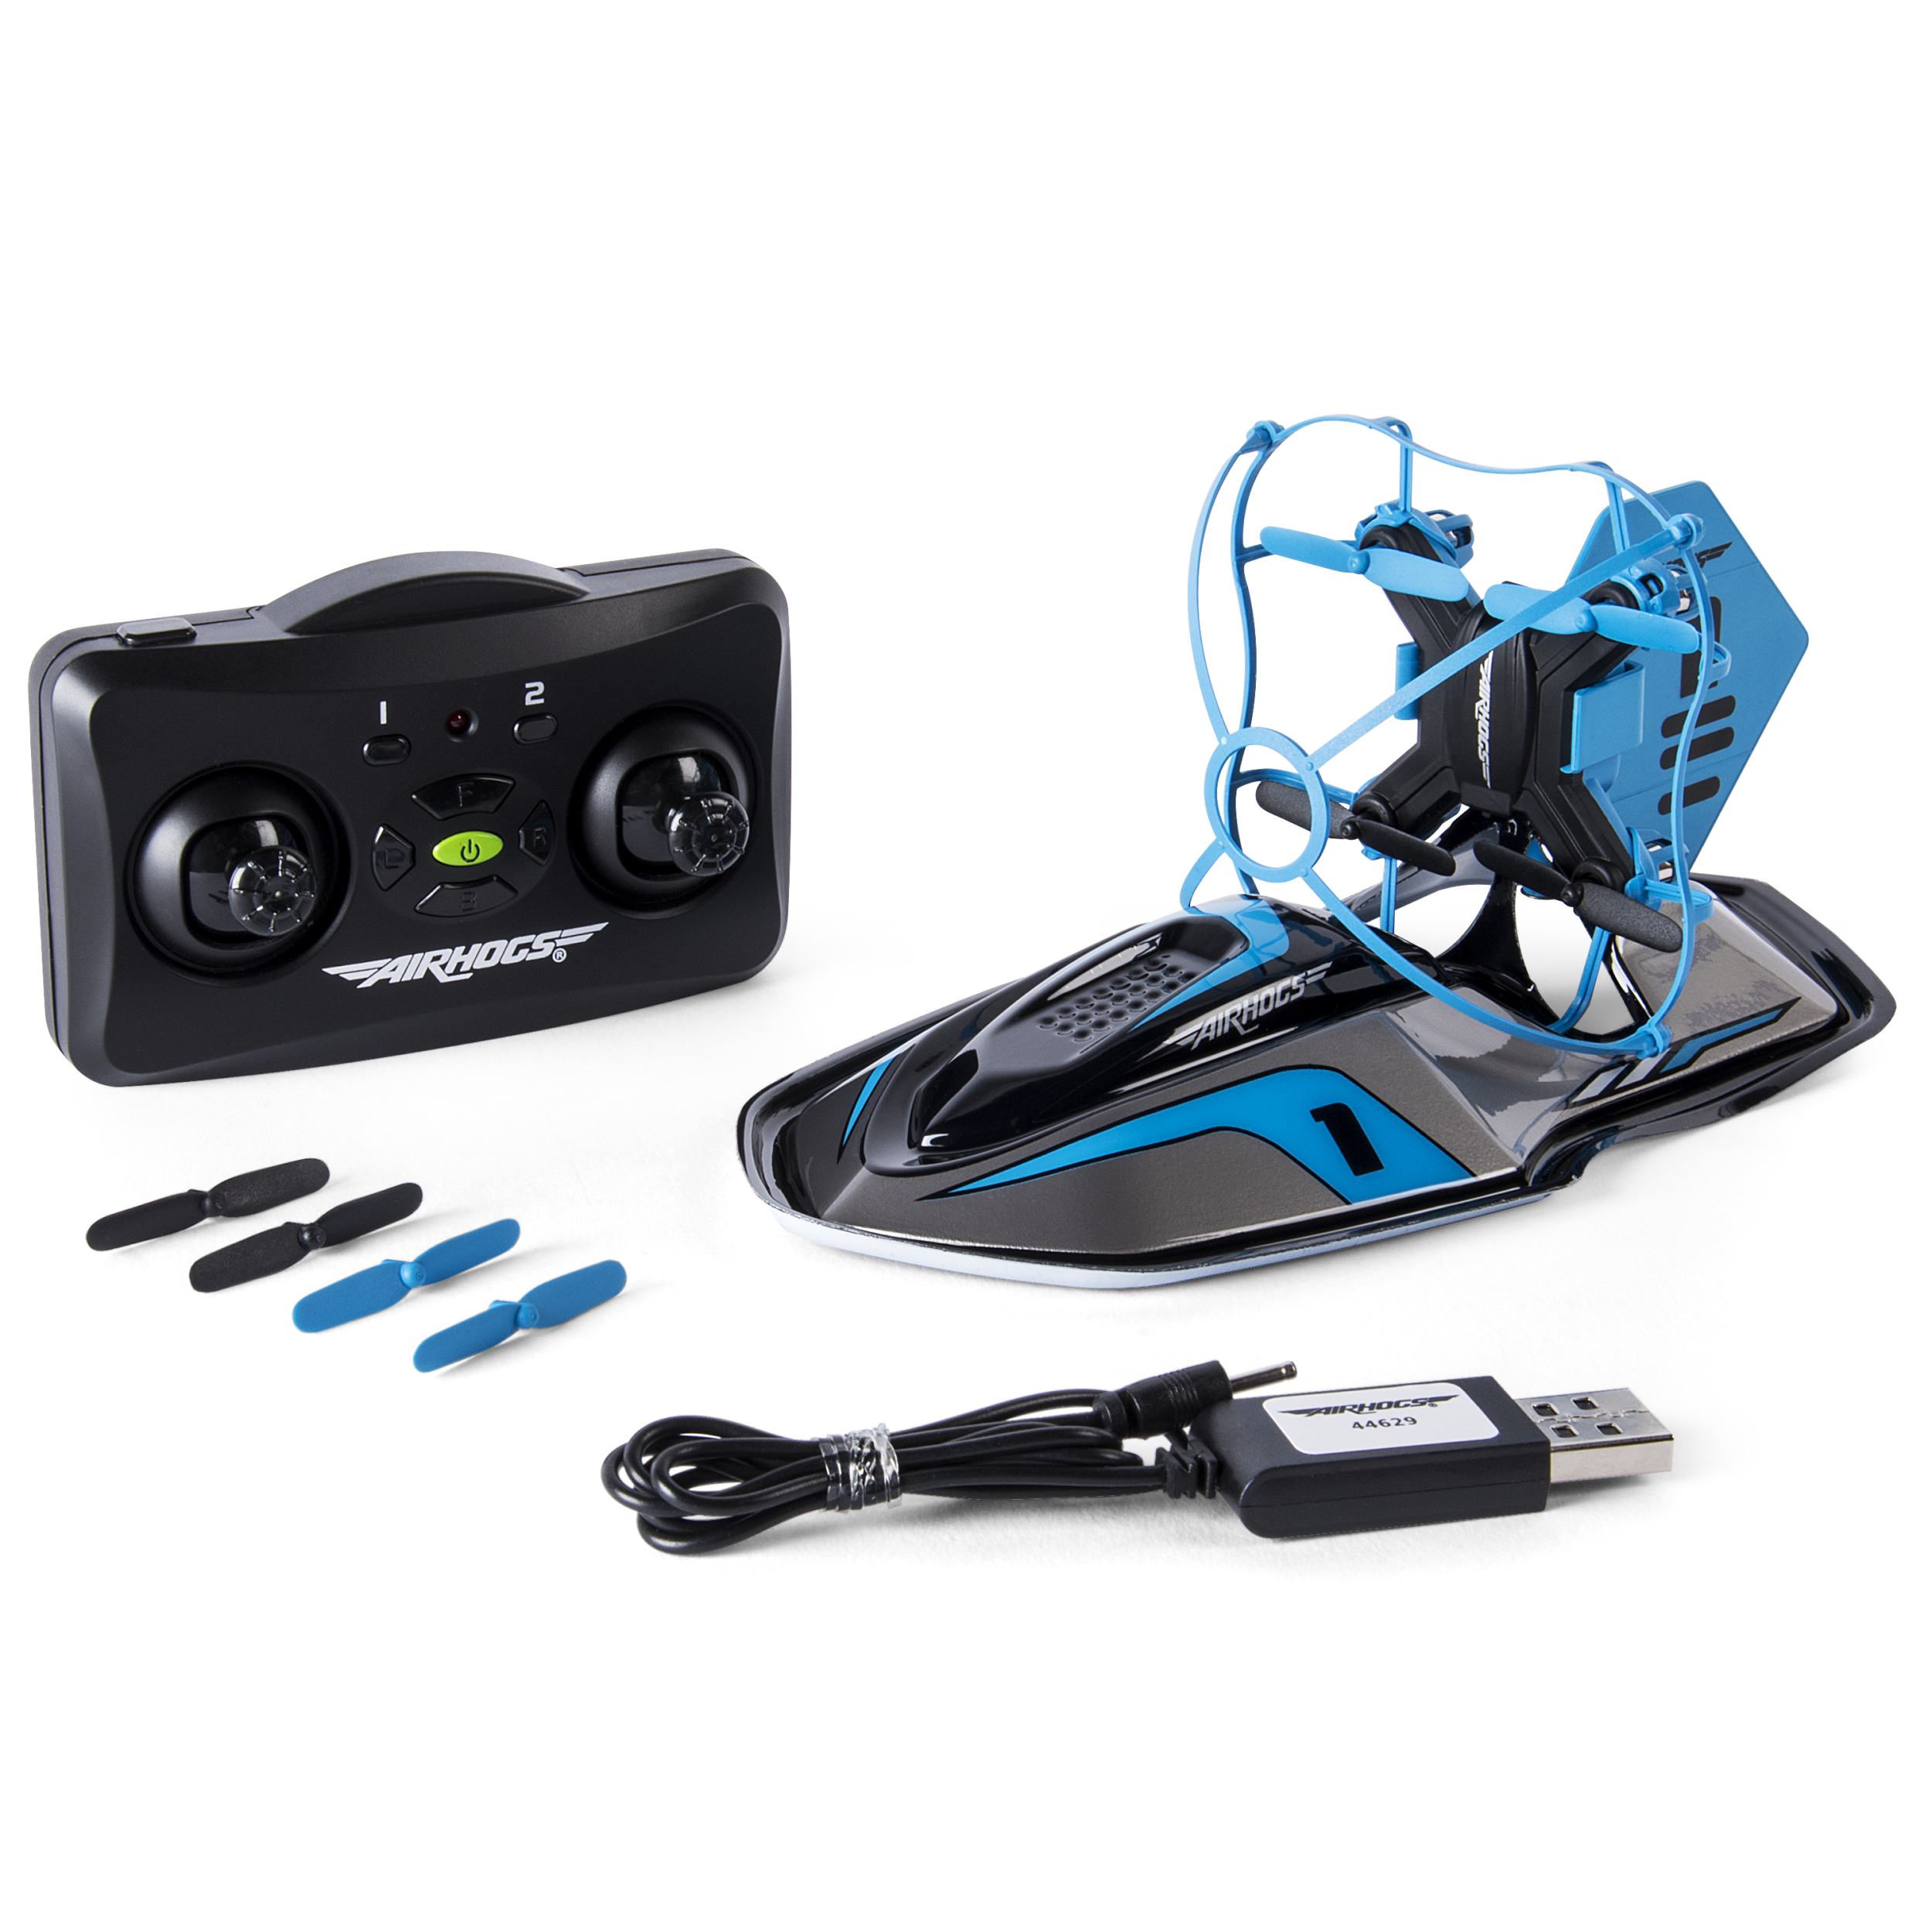 Air Hogs 2-in-1 Hyper Drift Drone for High Speed Racing and Flying, Blue